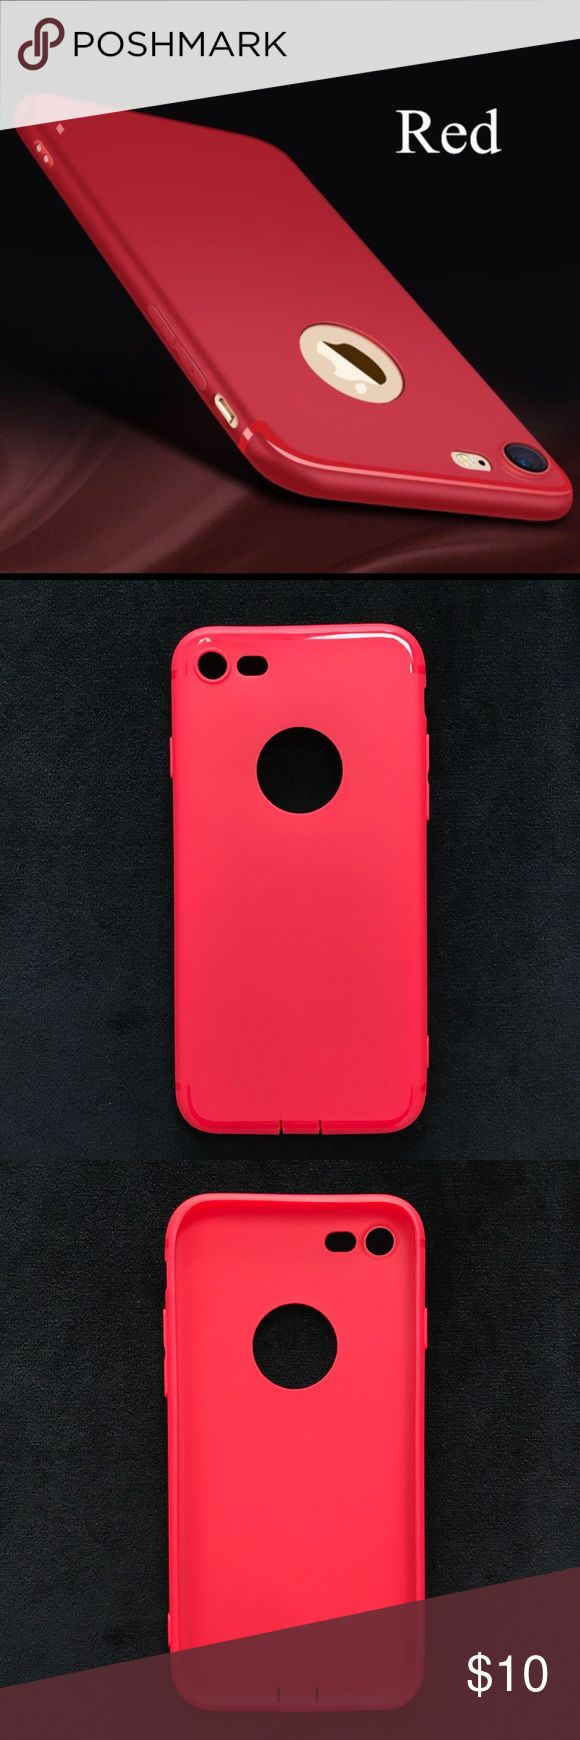 Iphone Soft Matte Phone Case NWT. * 100% Brand New. * Stylish And Elegant, Versatile And Practical Wear Products. * Precise cutouts give you full access to ports, and sensitive button covers allow responsive presses. * Designed to perfectly fit the You iPhone. * Model: For iPhone 6/6s. Iphone 7 plus * Color: Red. See photo for more details. Last photo is the item. No Trades. Price is Firm Accessories Phone Cases